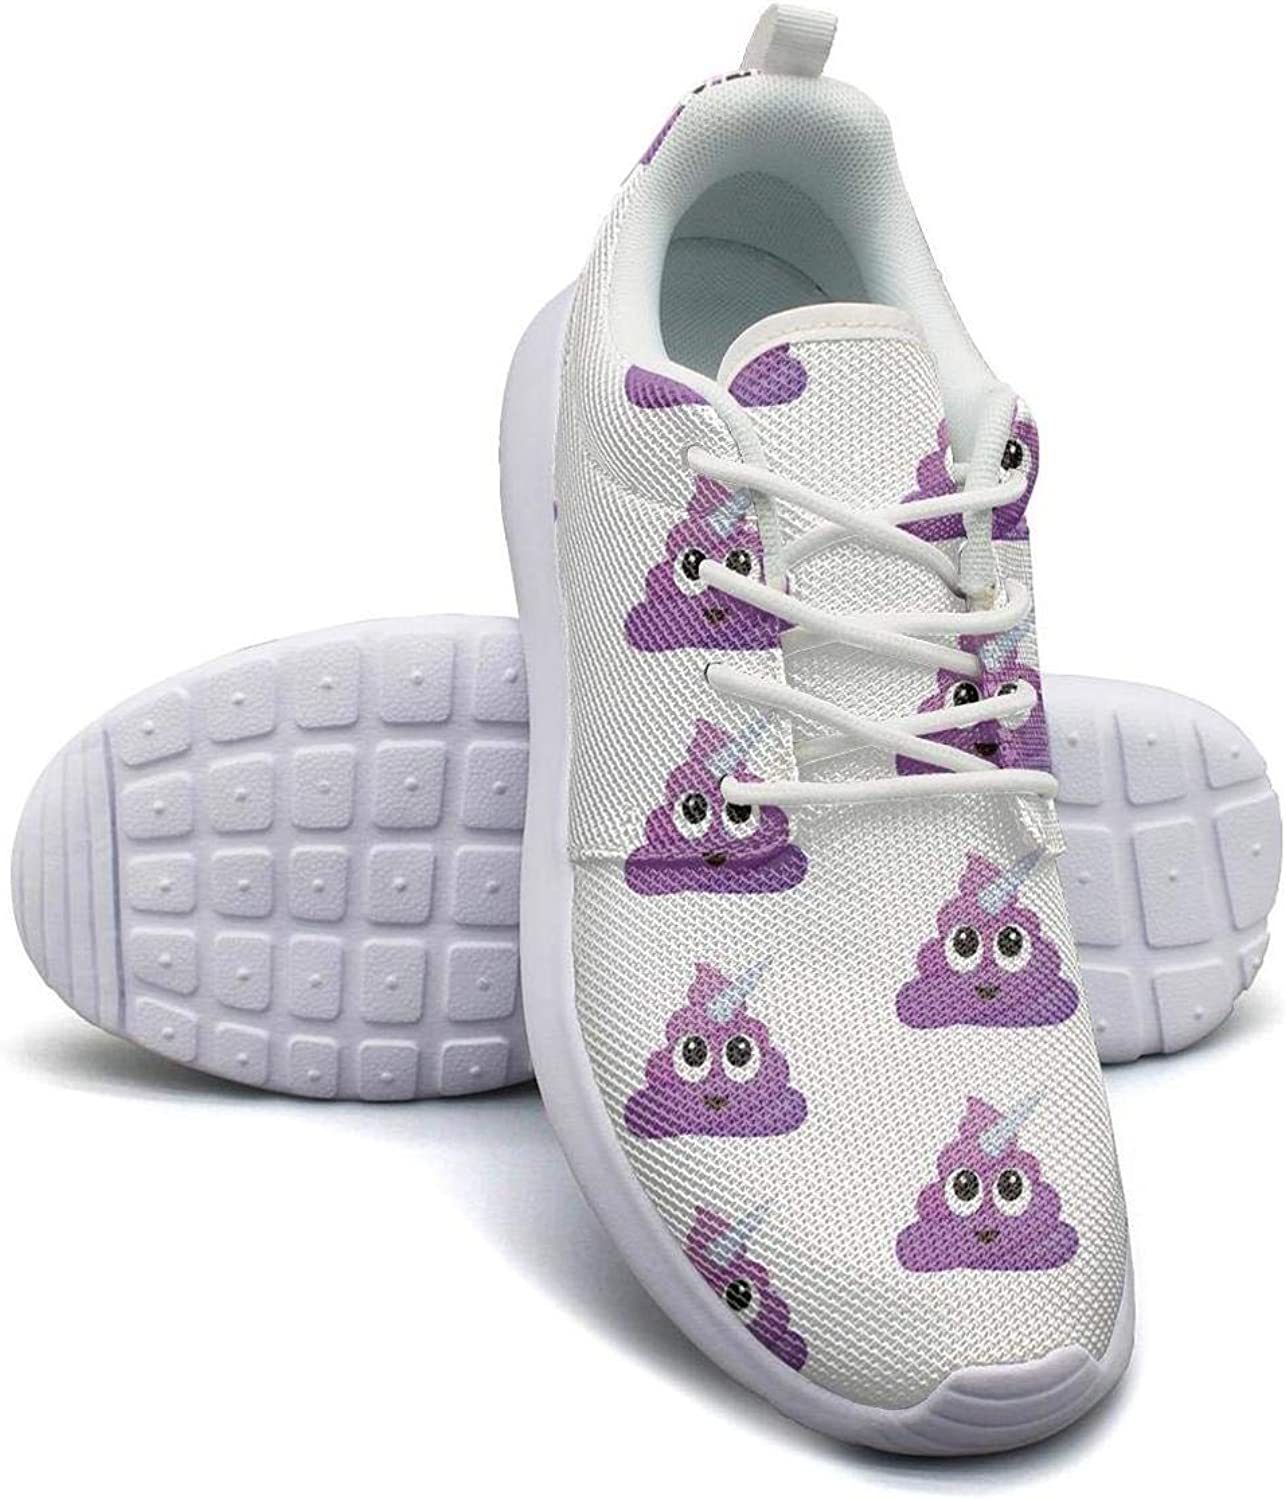 Gjsonmv Unicorn Poop Emoji mesh Lightweight shoes for Women Comfortable Sports Gym Sneakers shoes